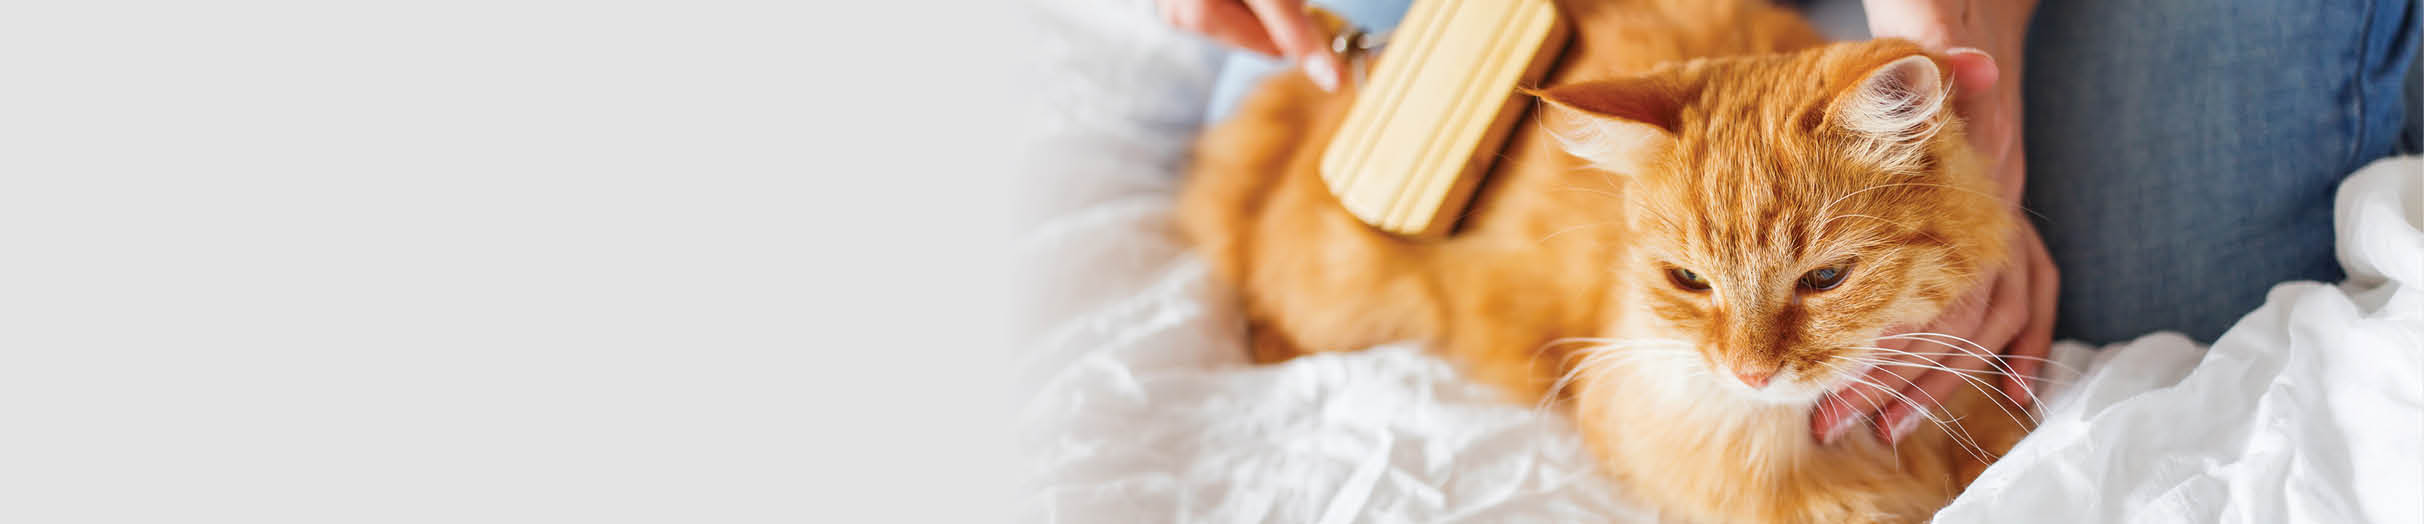 Buy cat grooming products online.